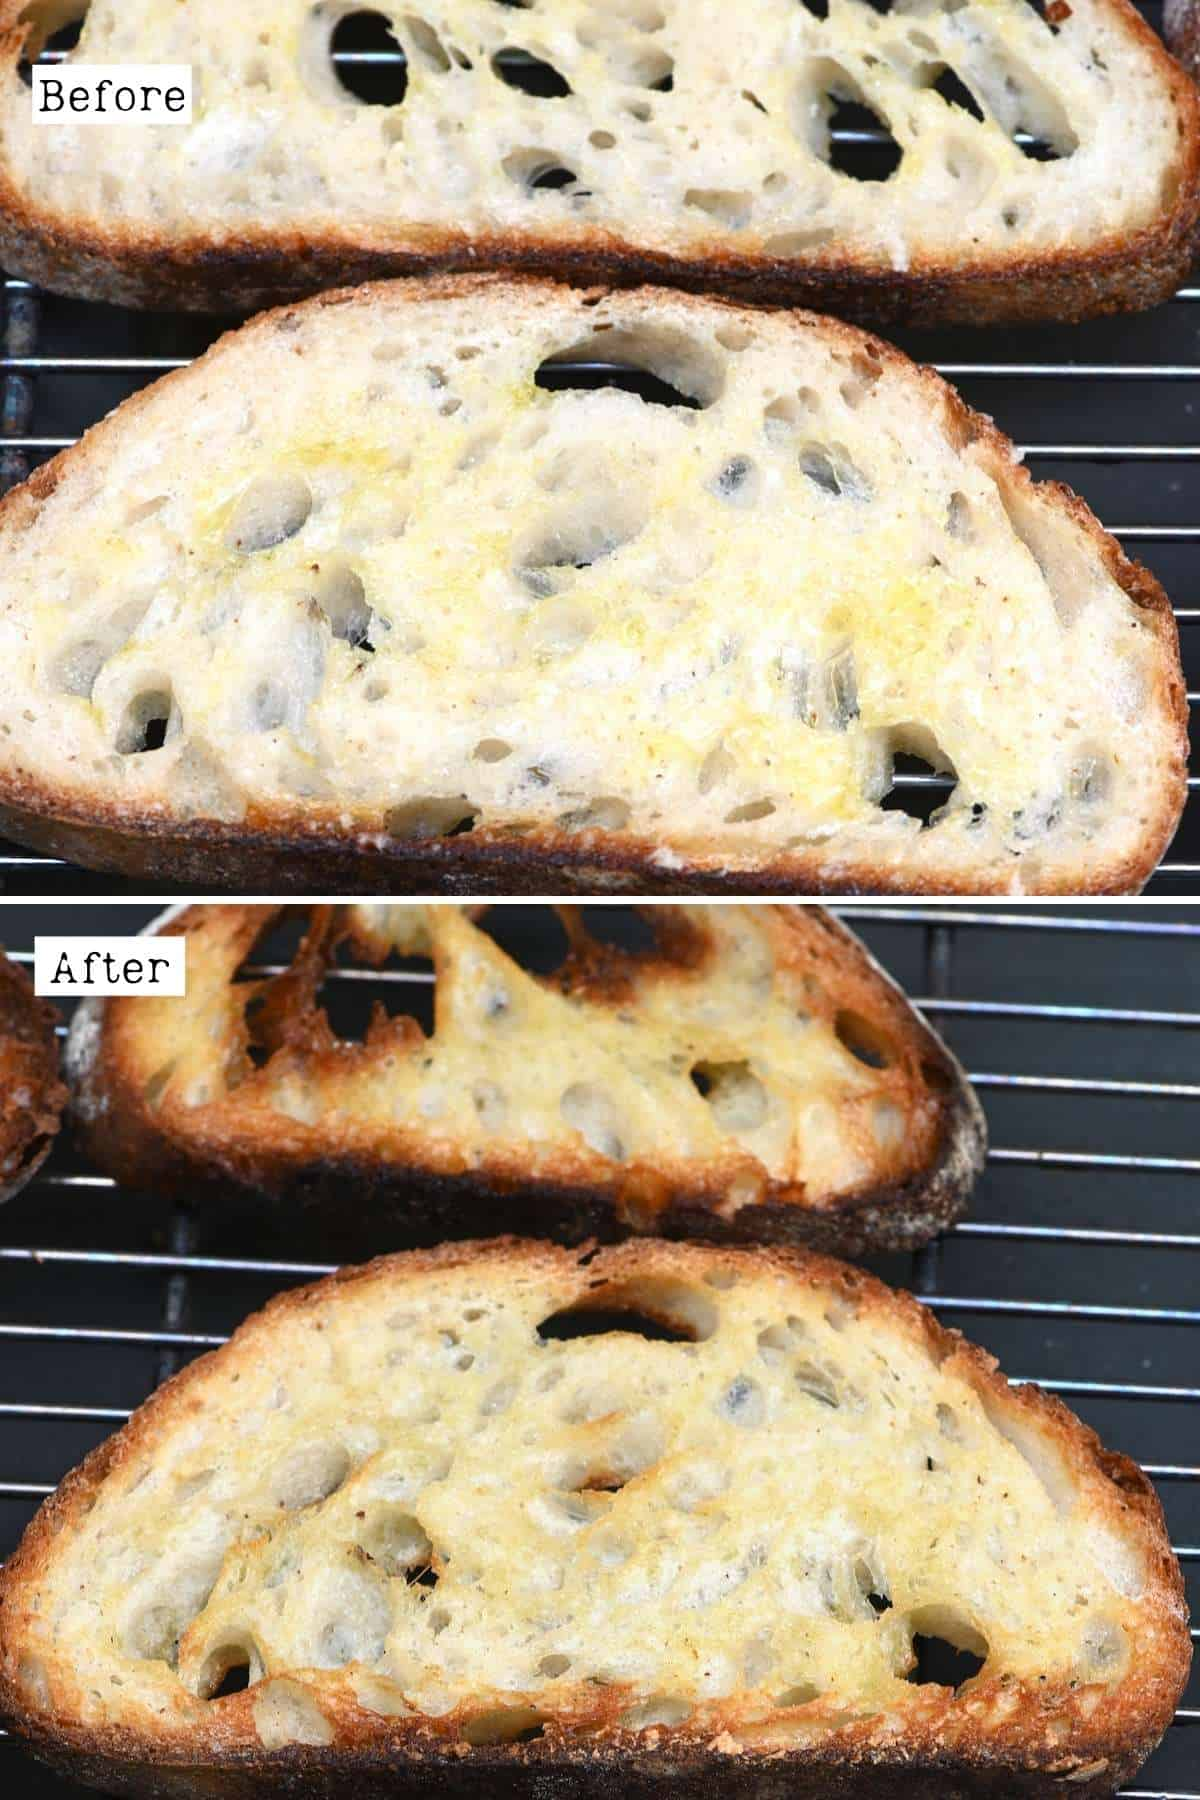 Before and after toasting bread in the oven